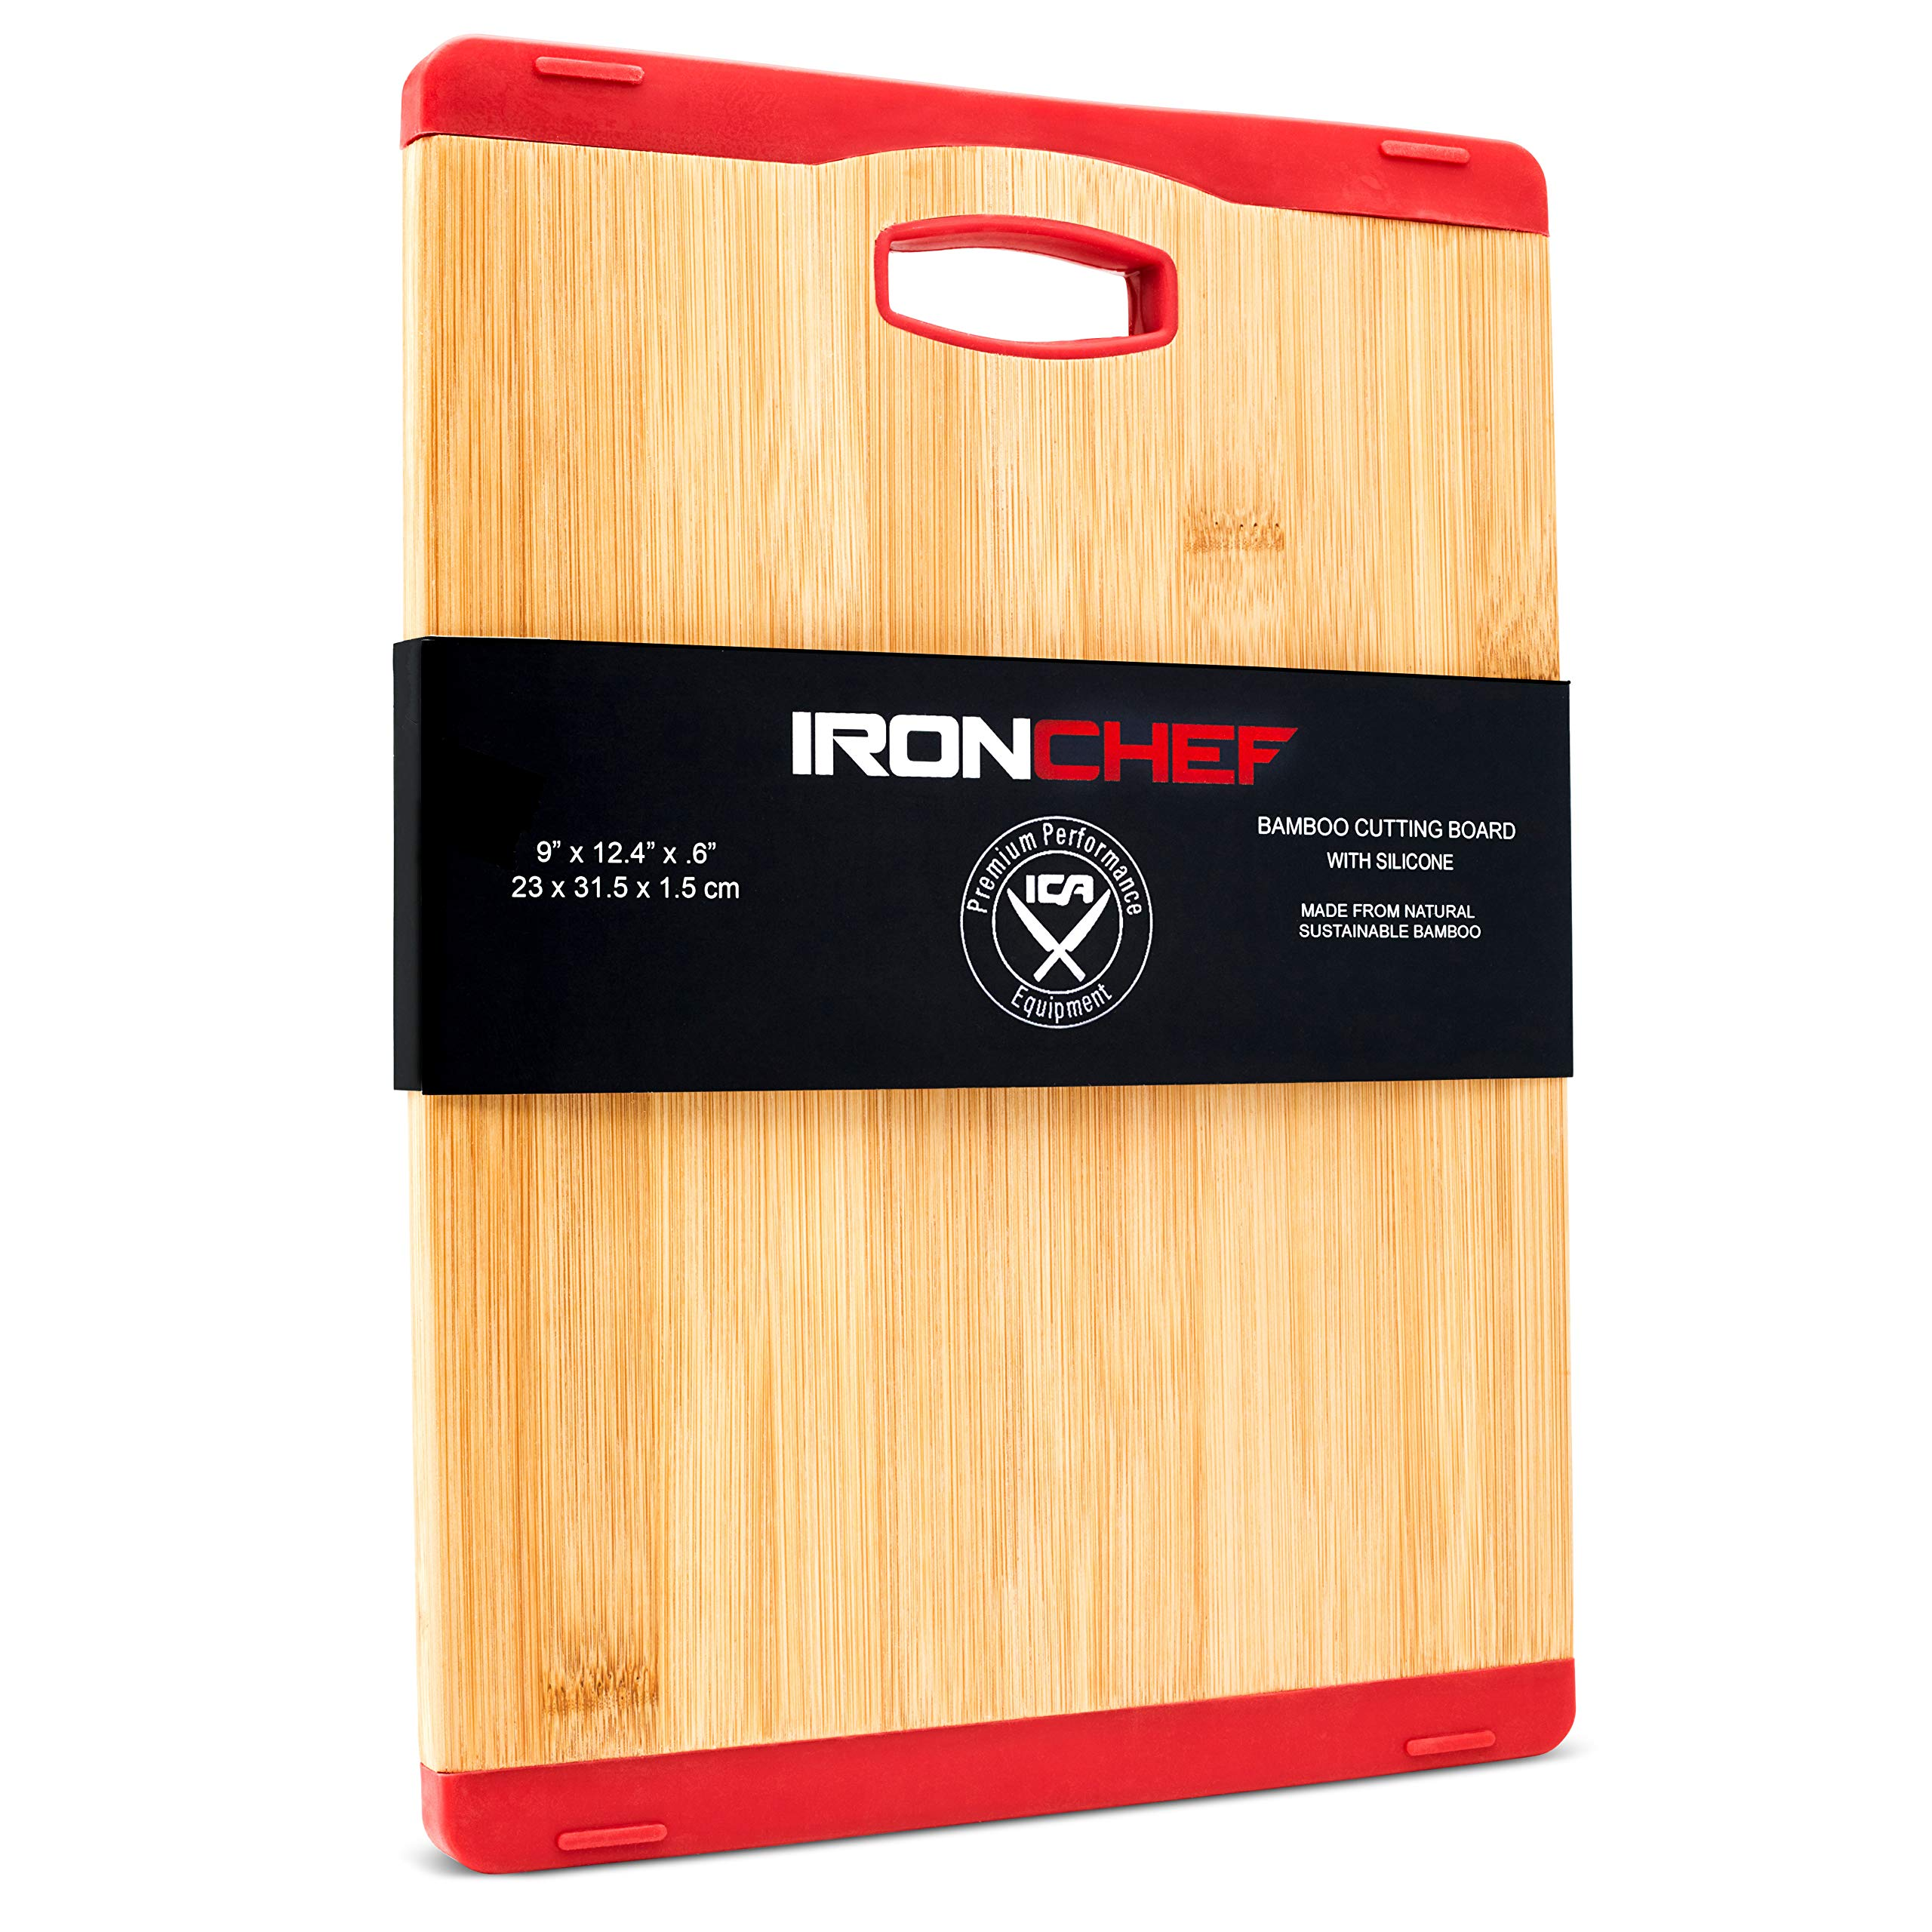 "Iron Chef Bamboo Cutting Board 12.4'' x 9'' x .6"" Reversible All Natural Organic Bamboo Wood Cutting Board with (Red) Non-Slip Silicone Edge"